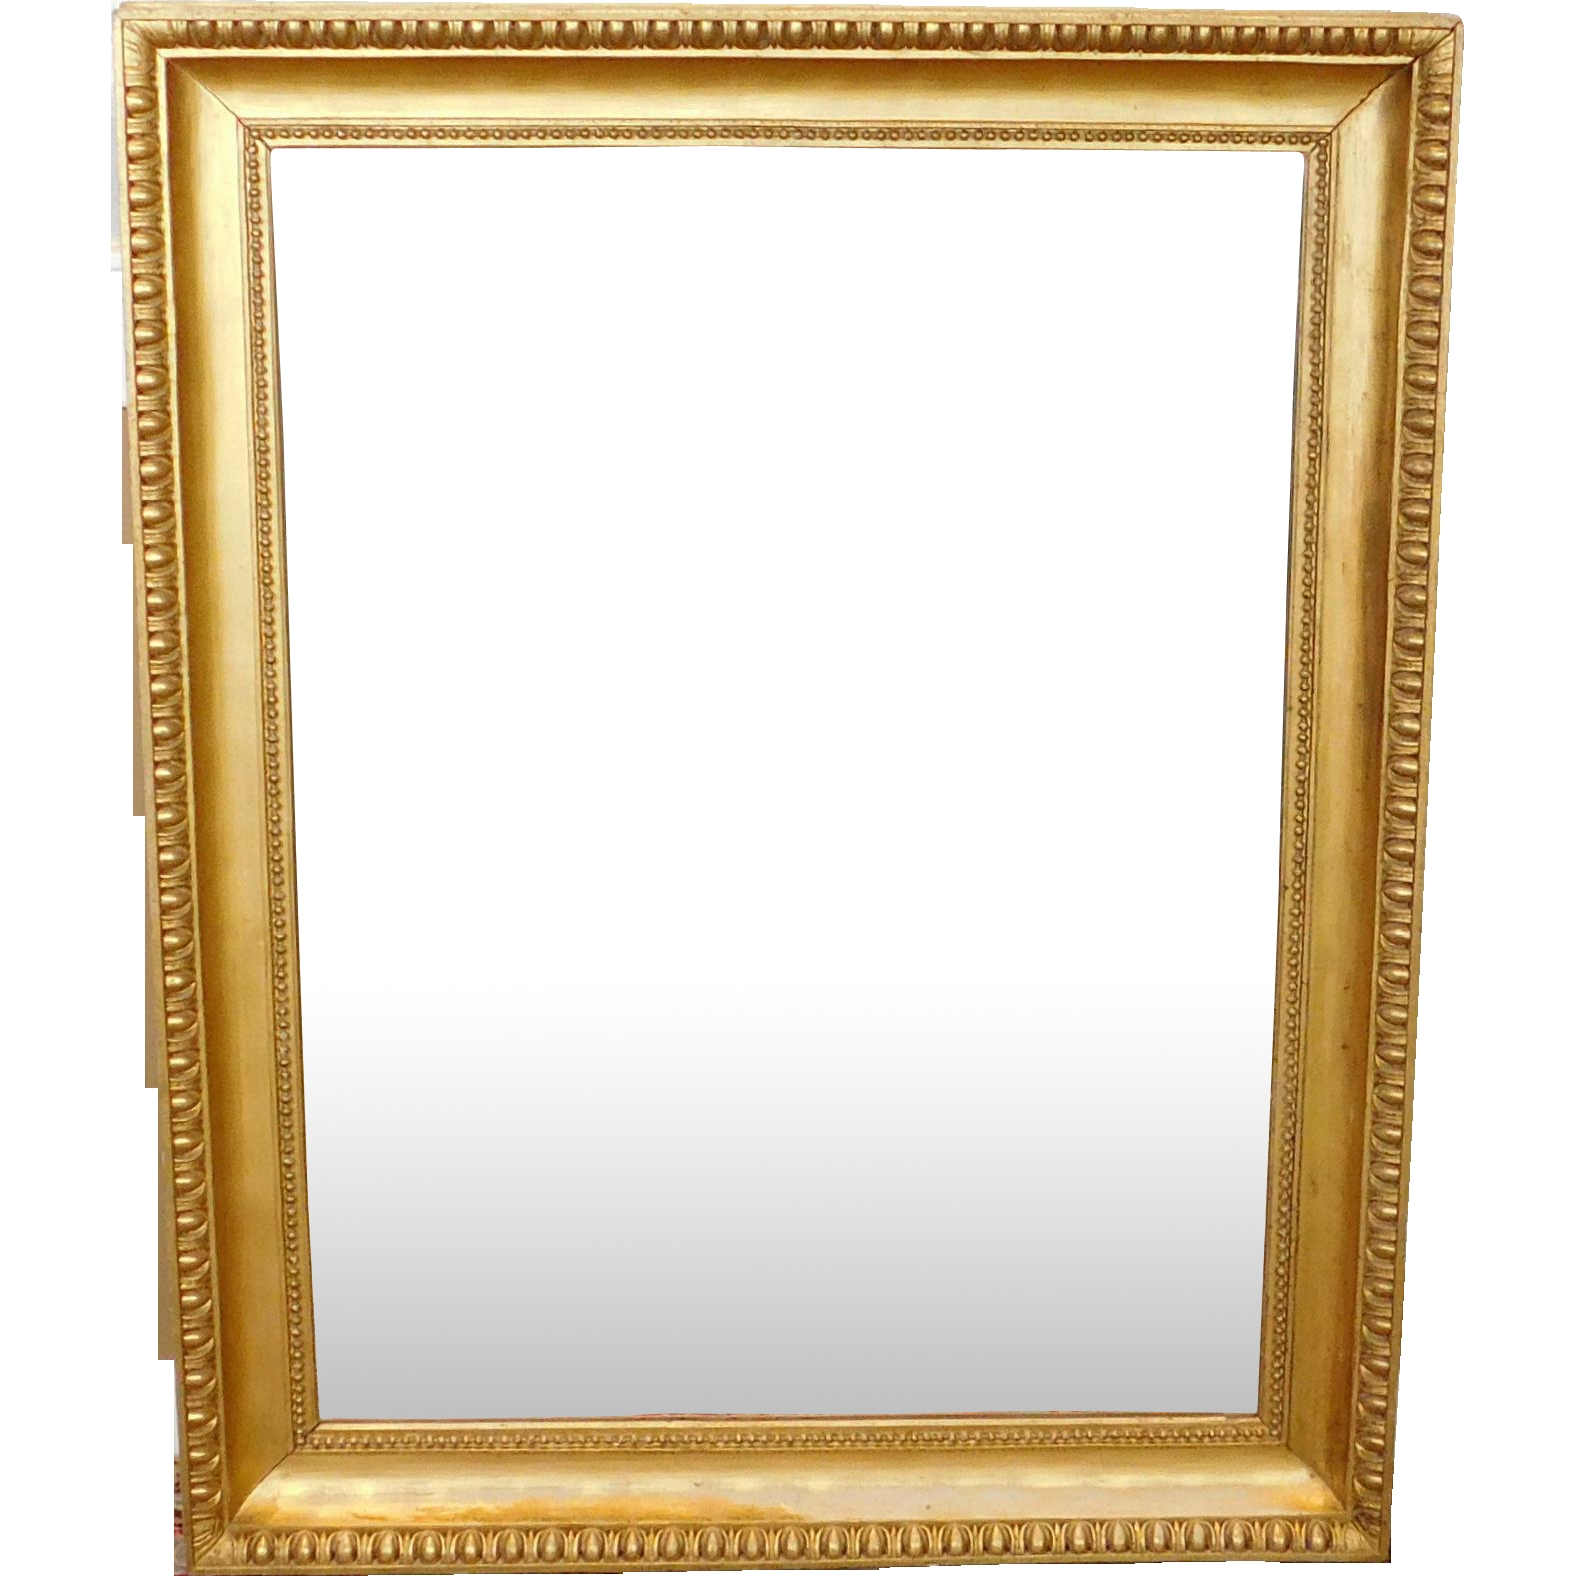 Fantastic Regency Style Gilded Frame Rectangular Hanging Wall Pertaining To Gilded Mirrors For Sale (View 15 of 15)